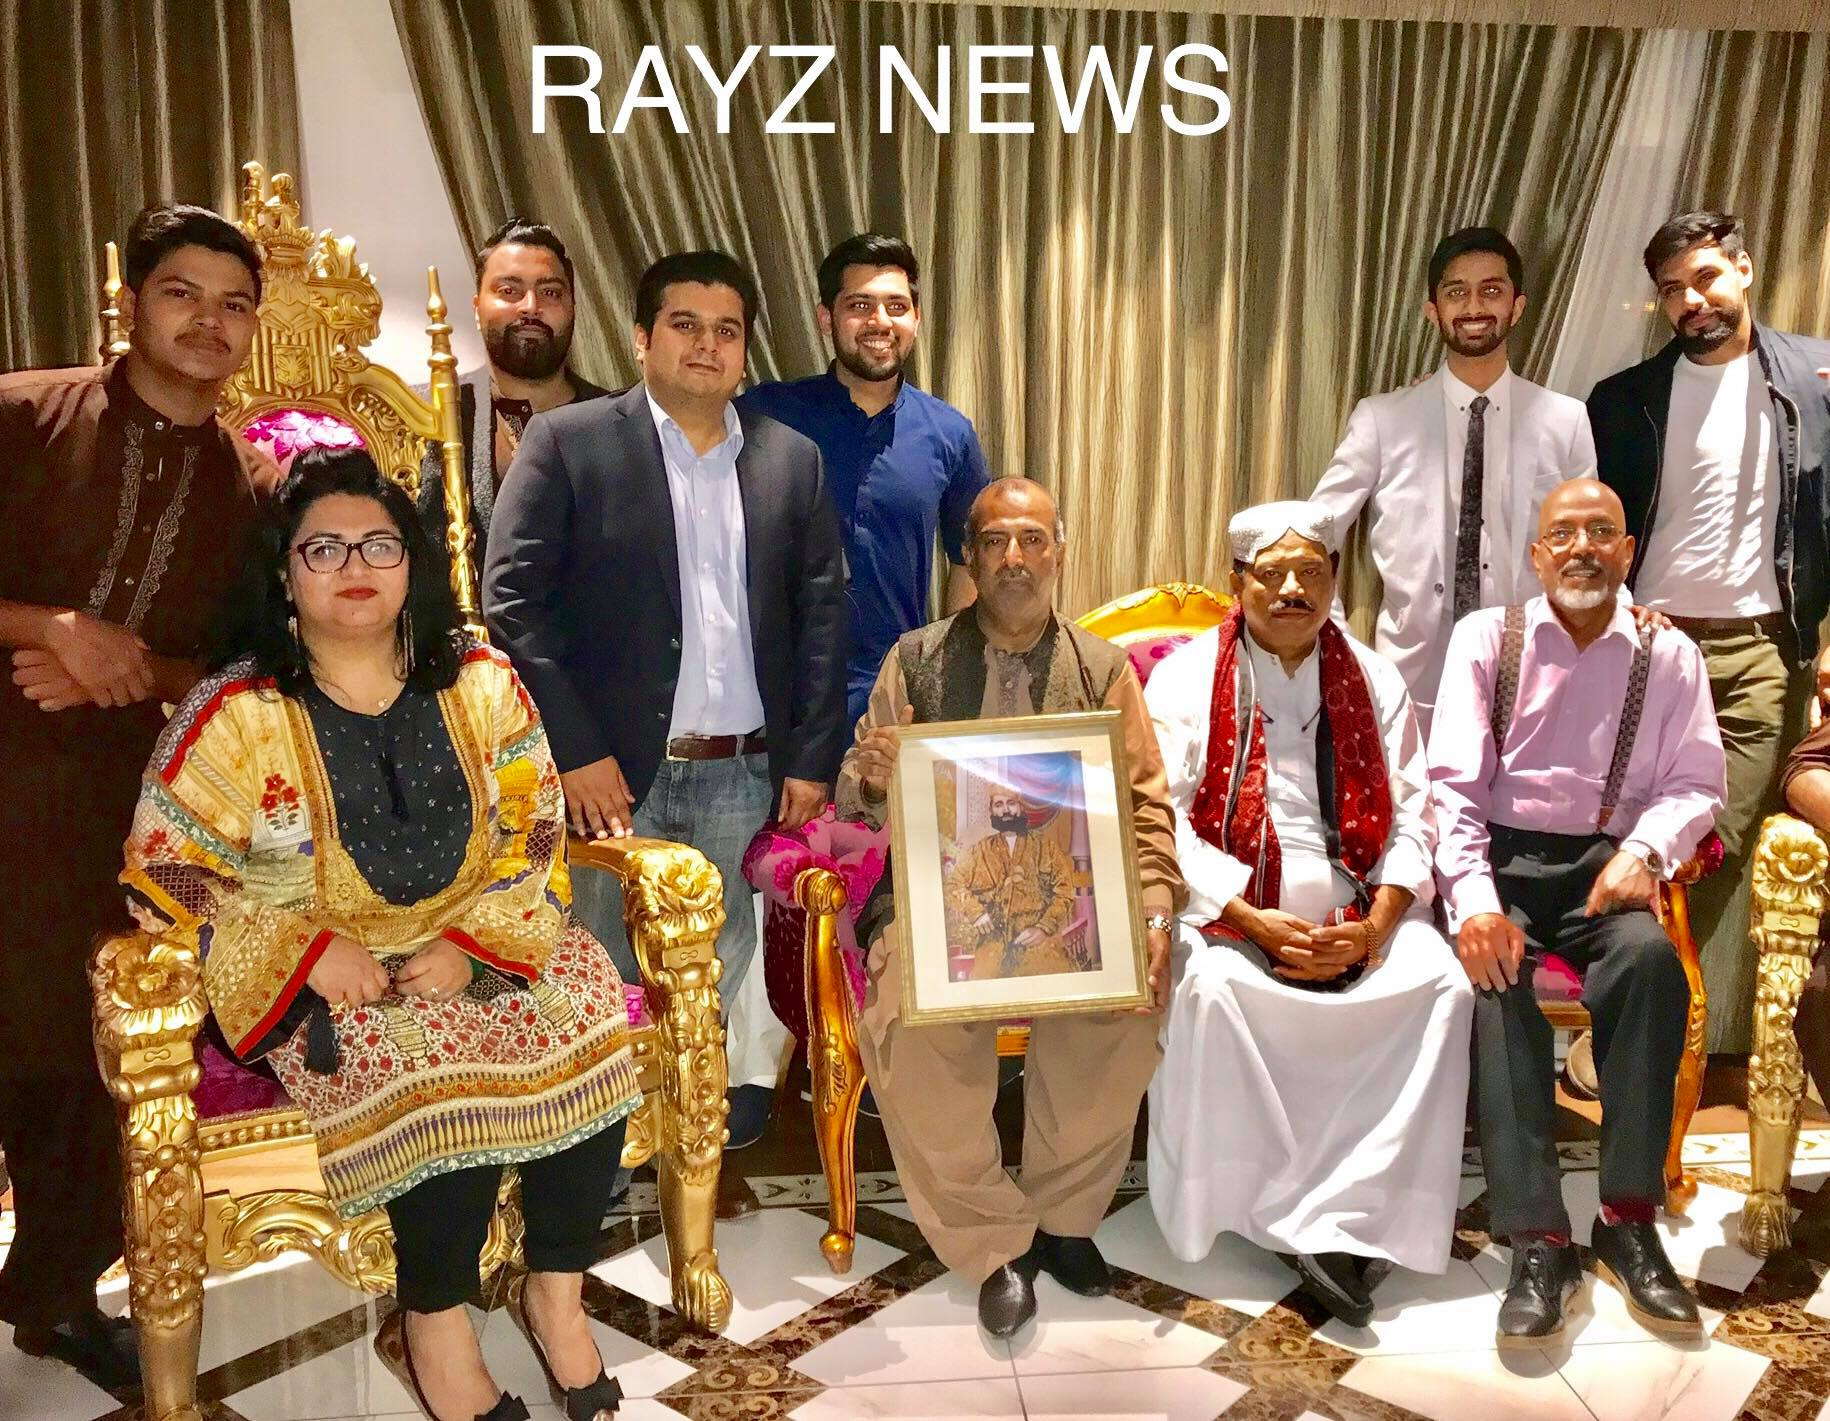 Mehfil Arts presented the preeminent Sufi Qawwals of our time Ustad Fareed Ayaz